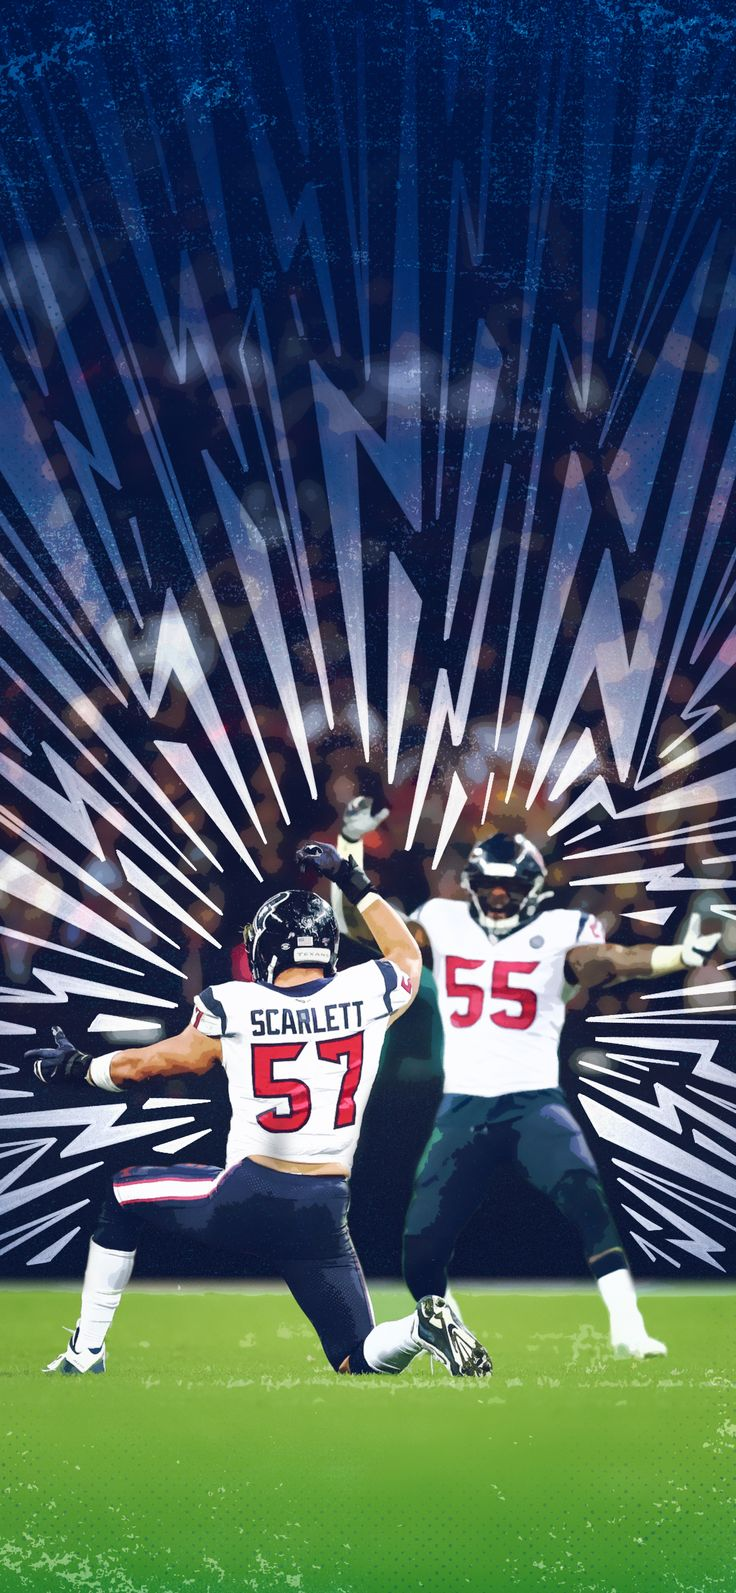 Pin by Houston Texans on Wallpaper Wednesday in 2020